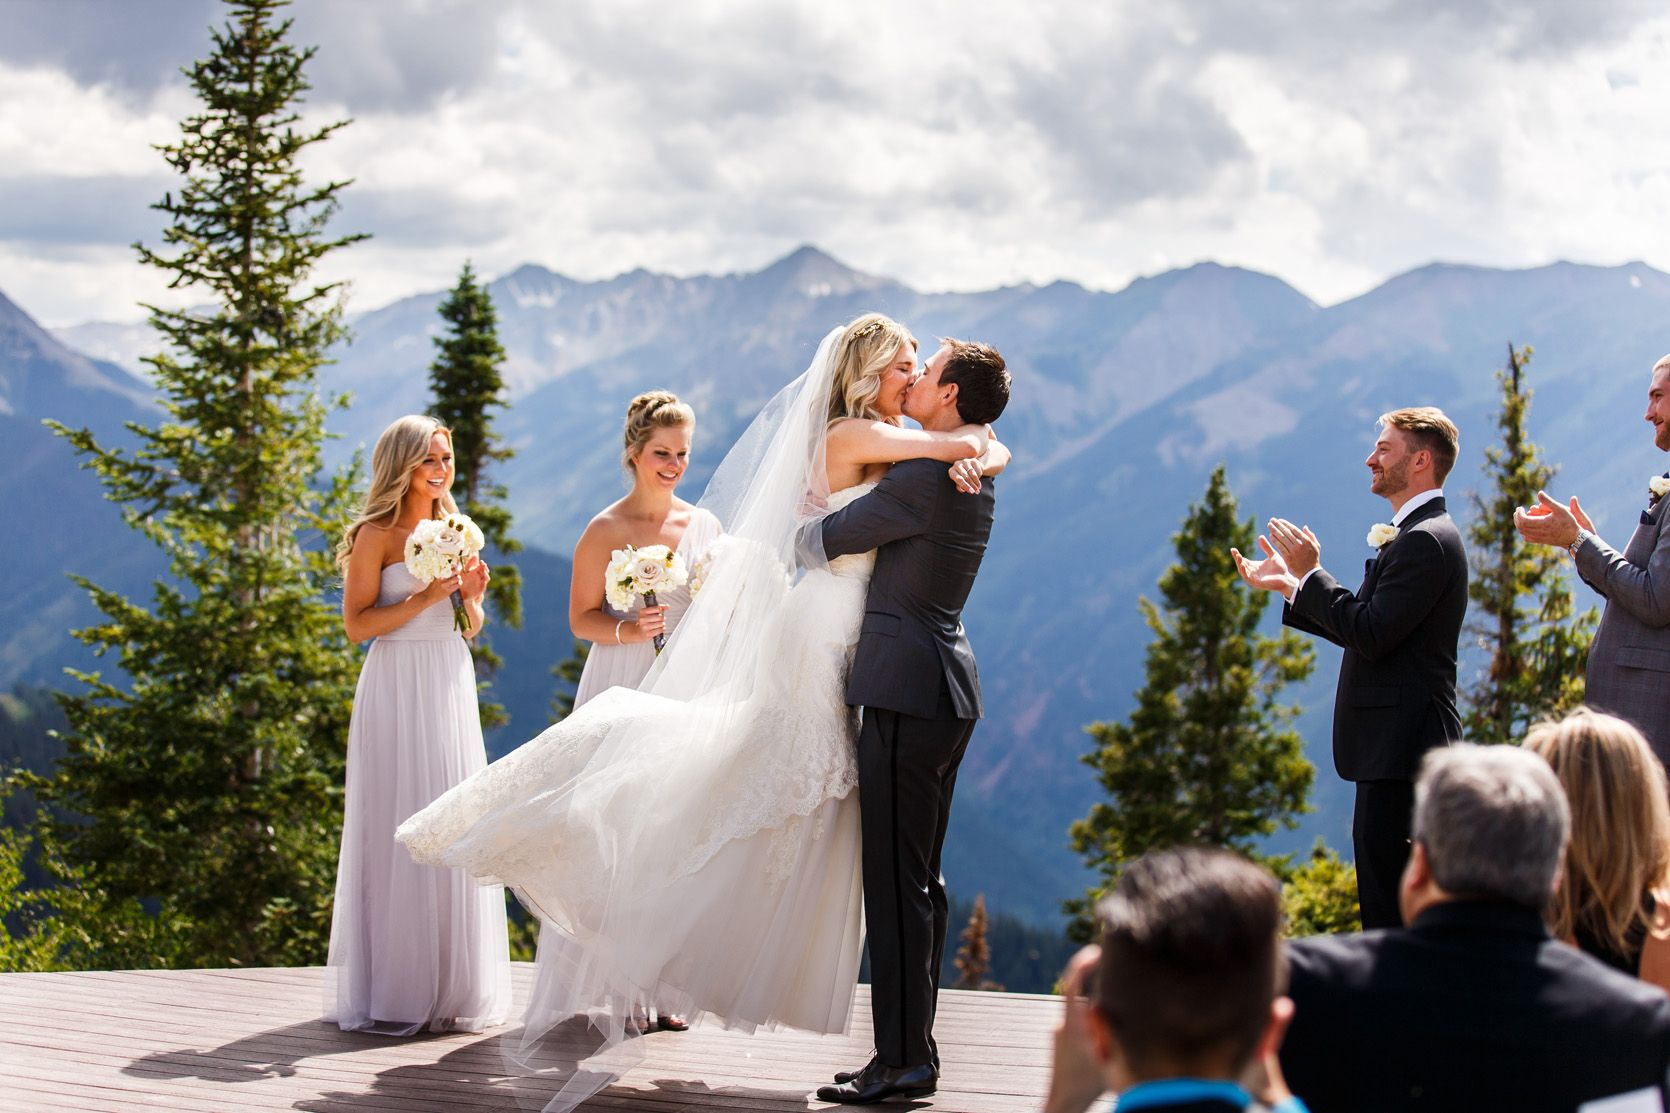 First kiss on Aspen Wedding Deck at The Little Nell